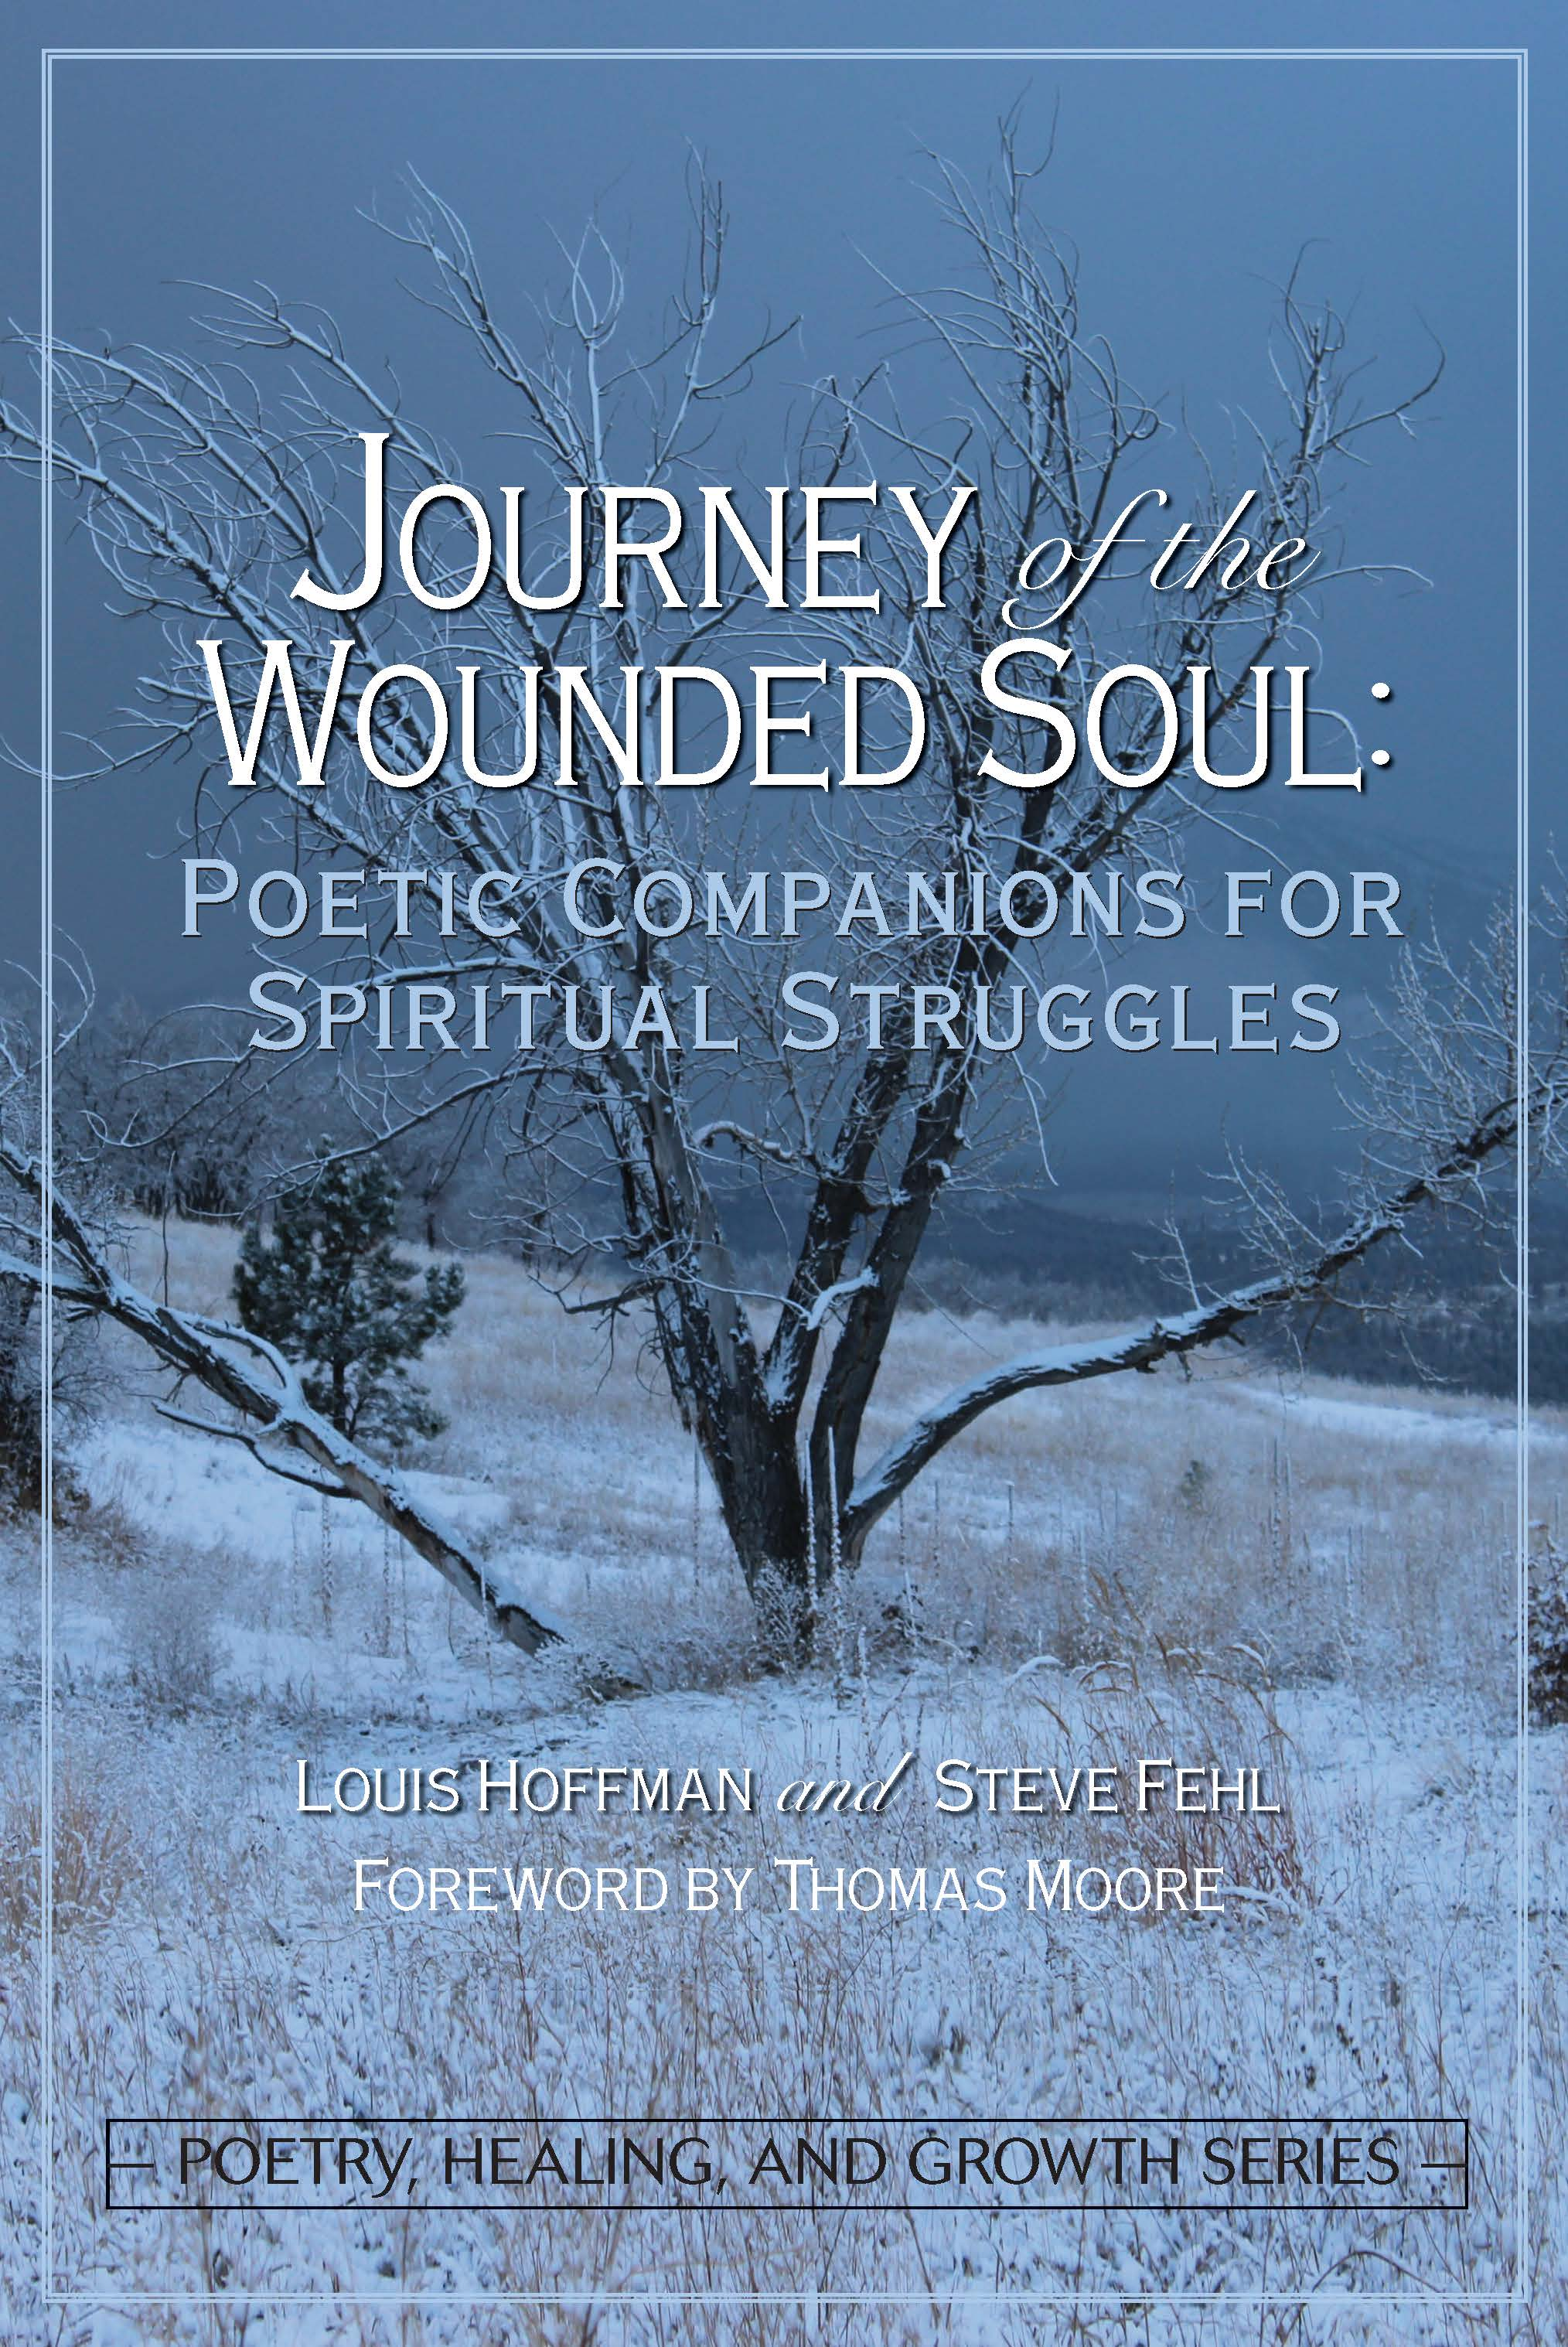 Journey of the Wounded Soul: Poetic Companions for Spiritual Struggles Image